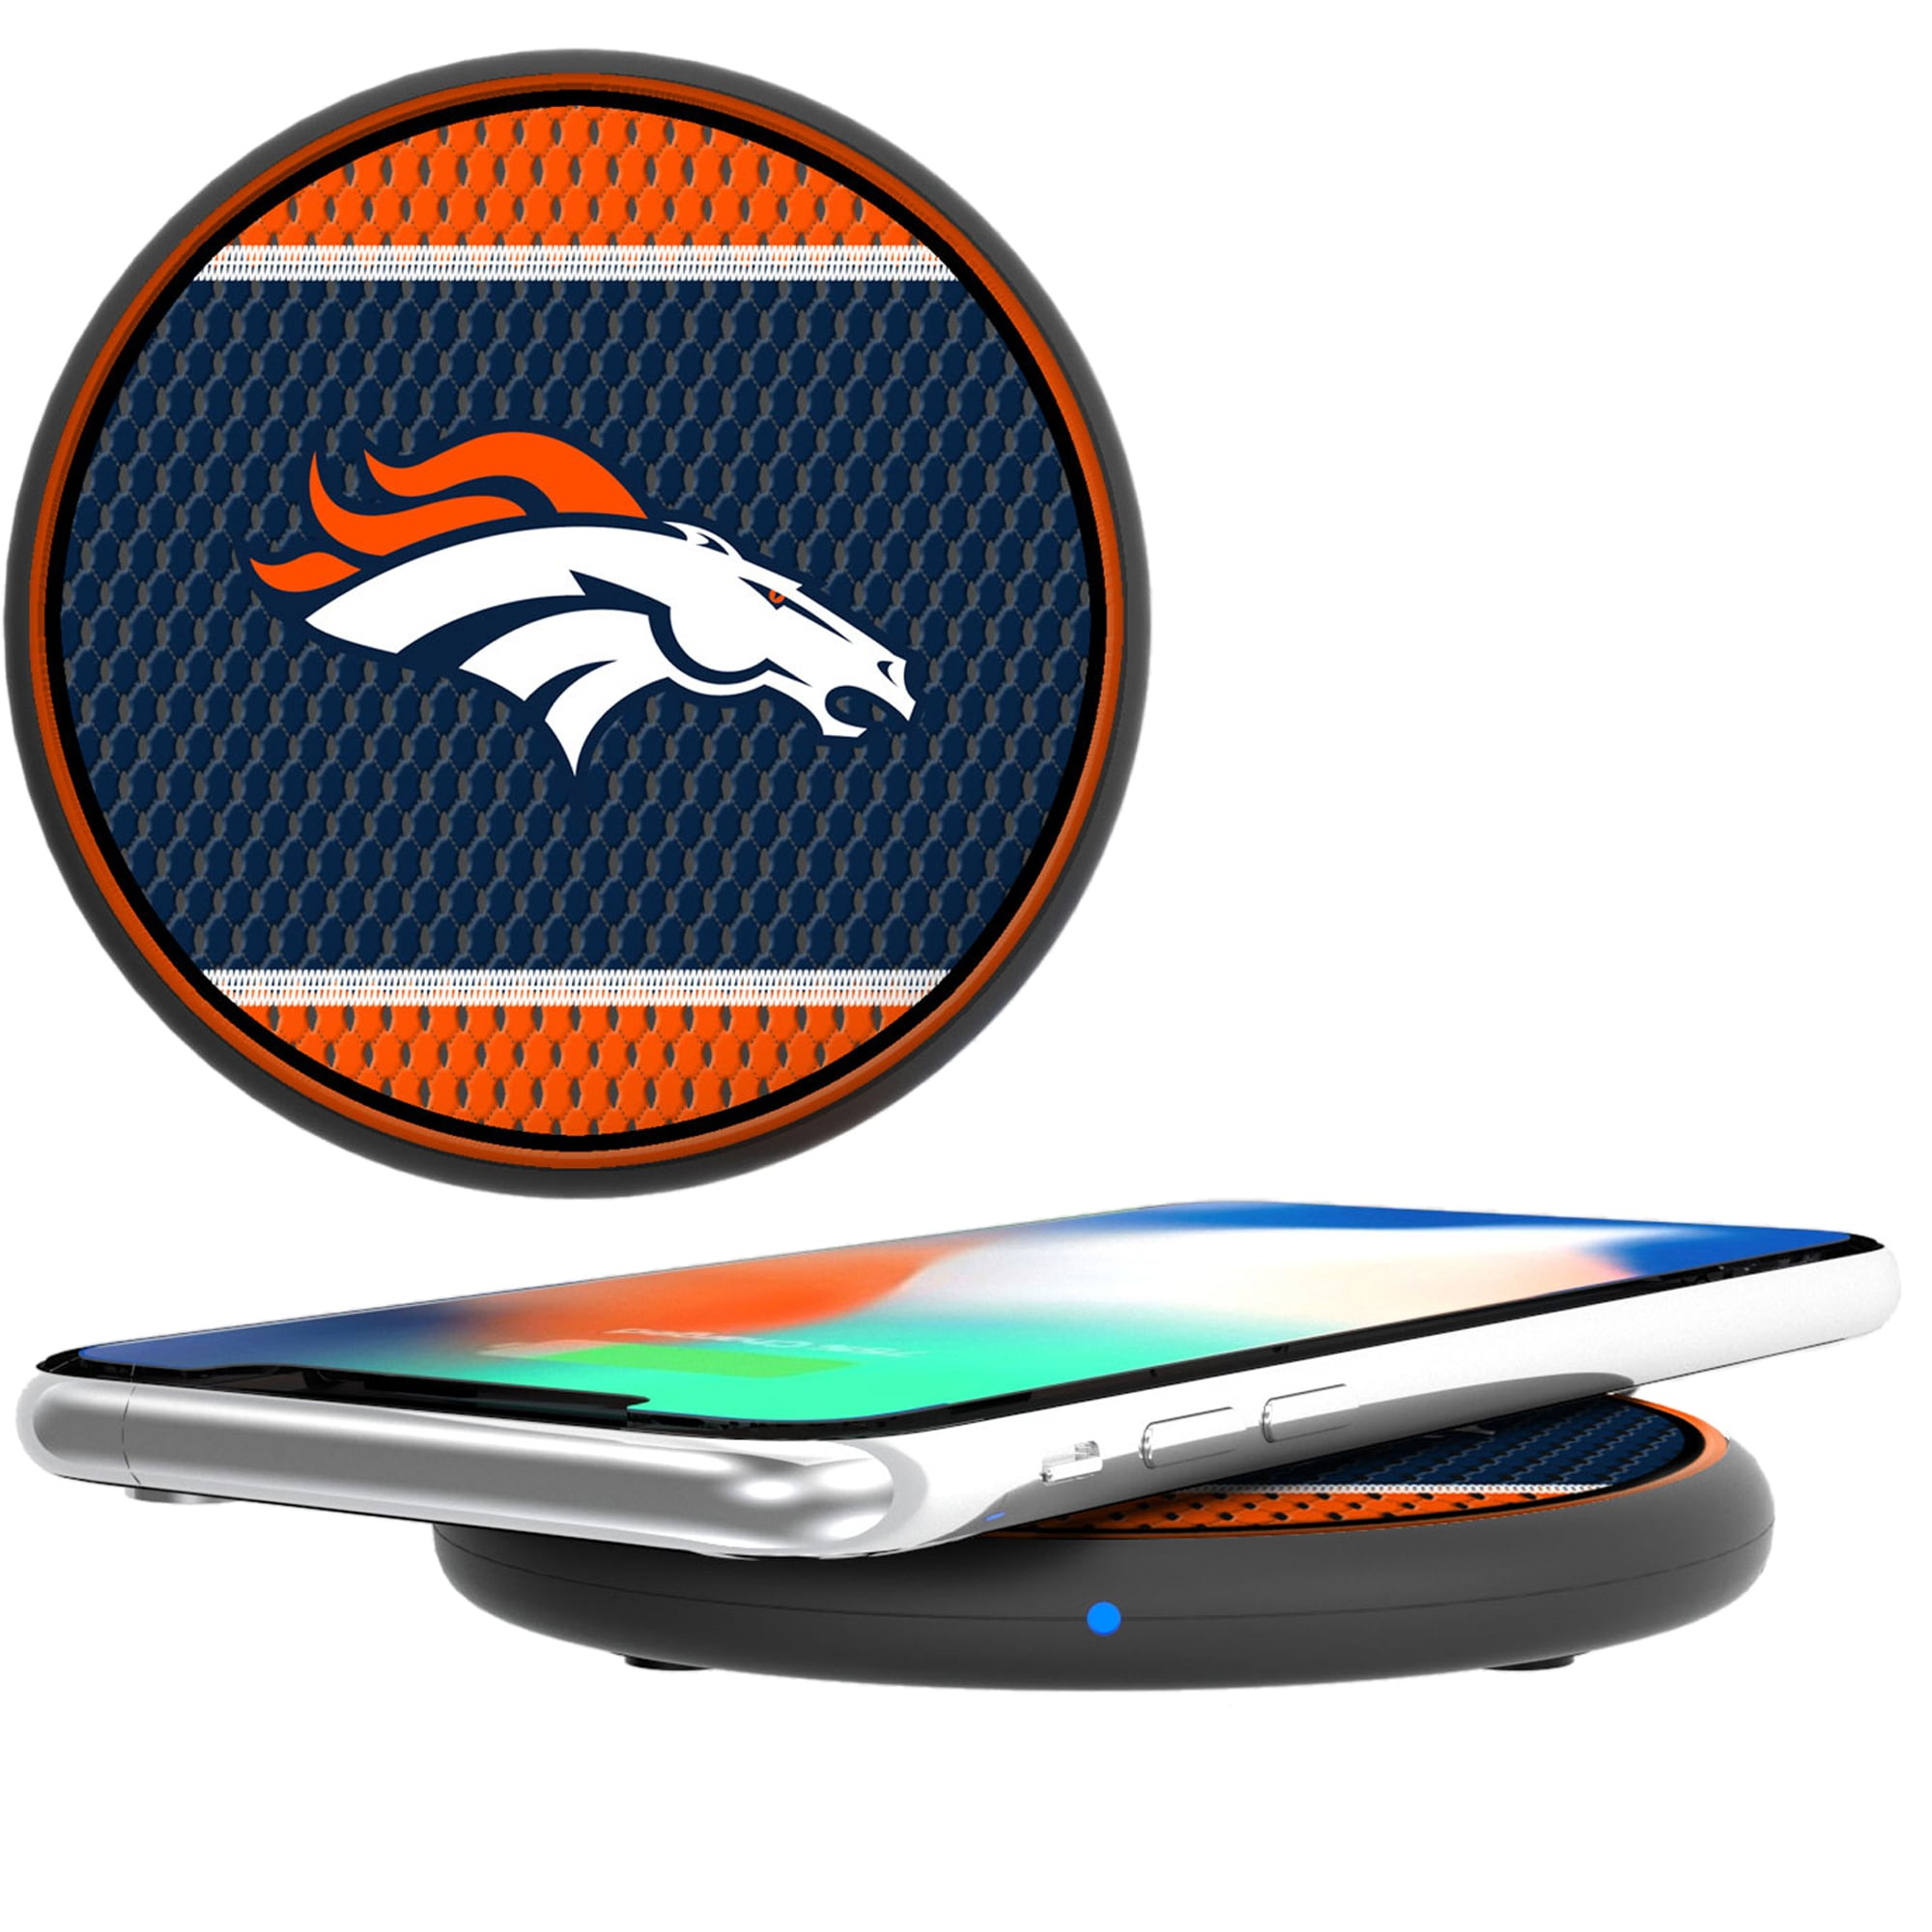 Denver Broncos Wireless Charger